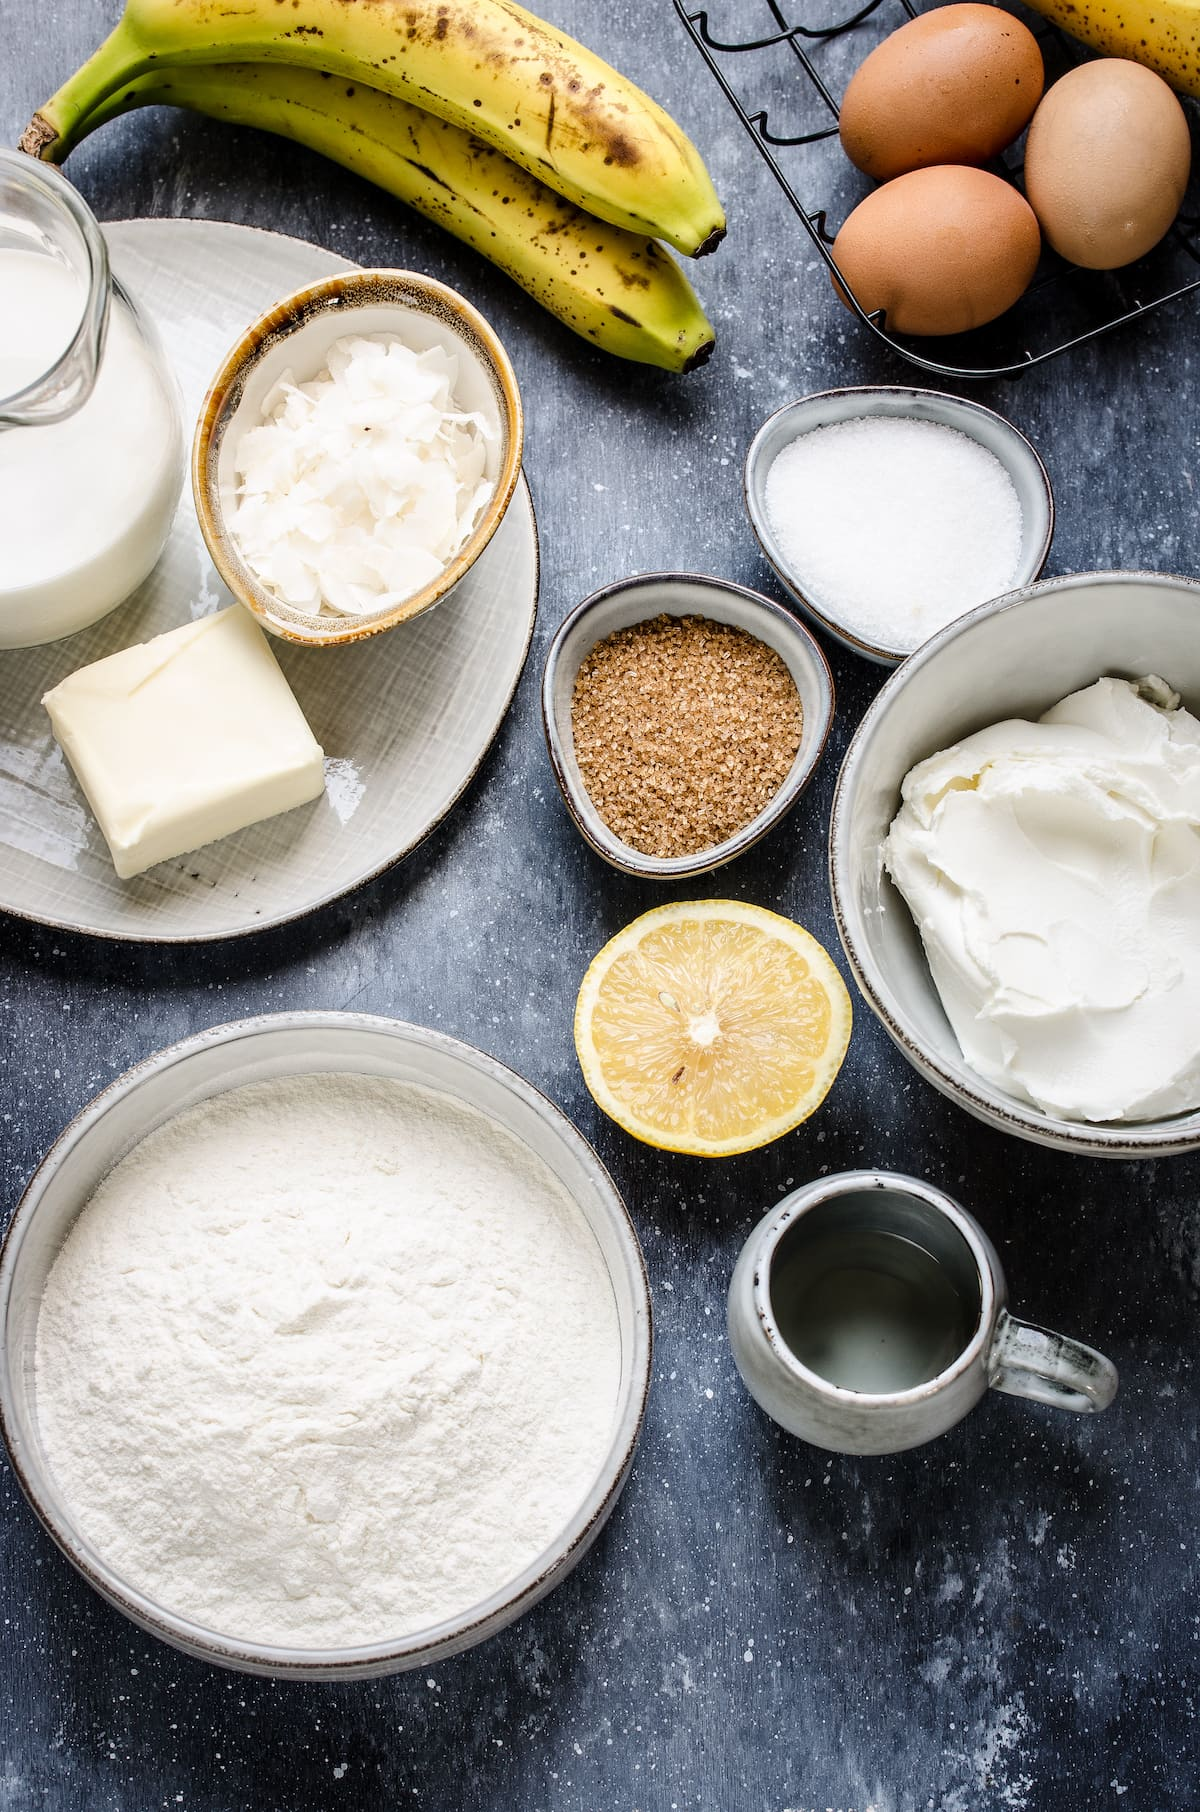 Ingredients for frosted banana cake